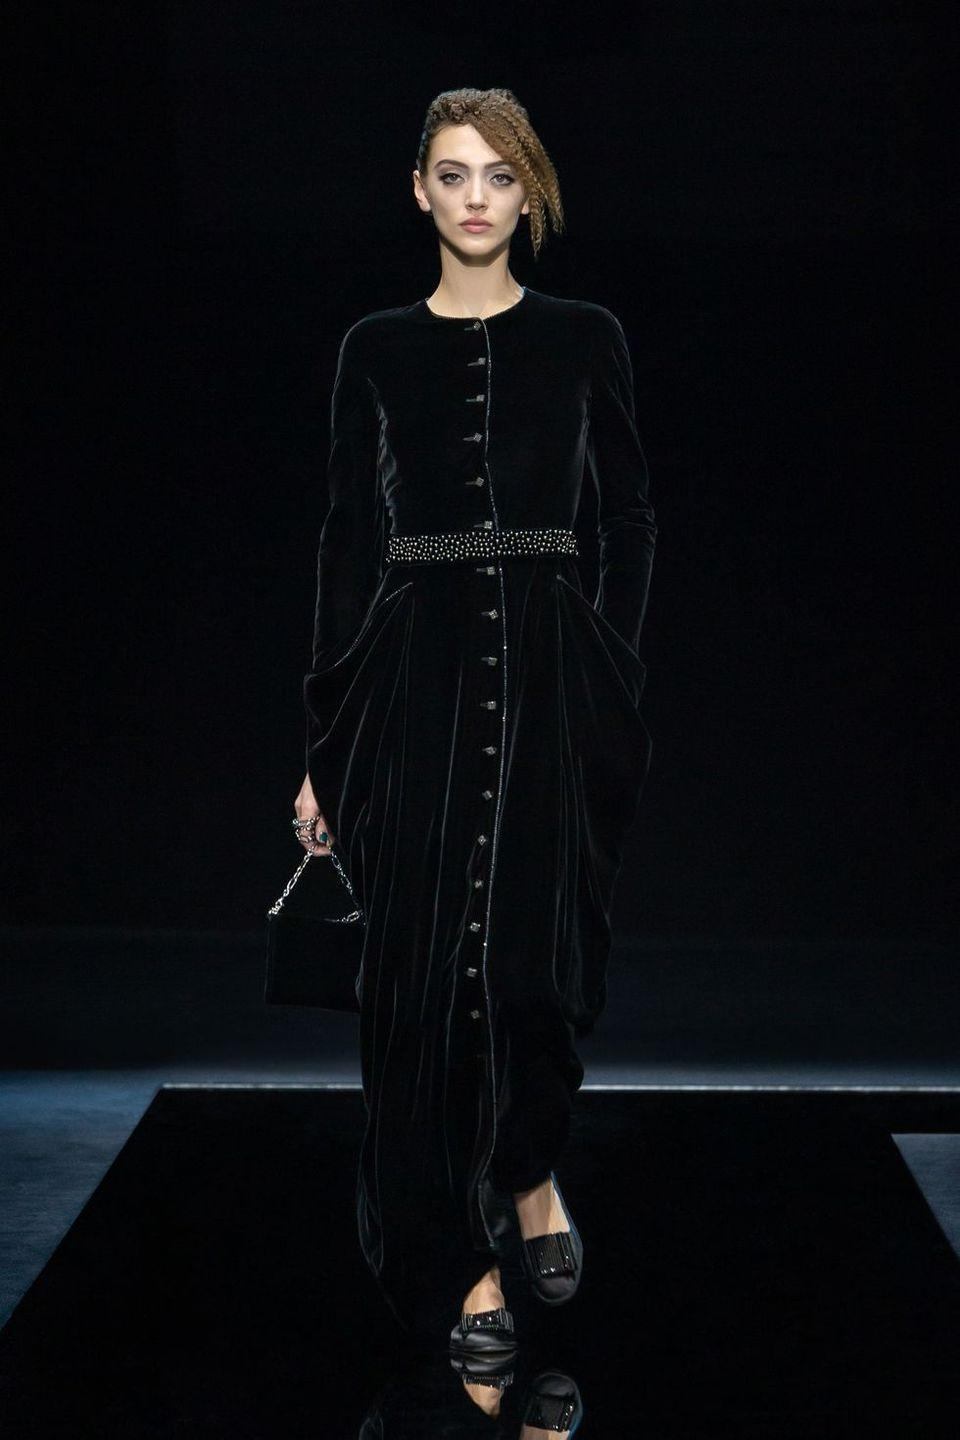 """<p>Giorgio Armani is forever soft and subtle—precise, but never harsh. His particular presentation of femininity is brought to life with ruffles and petals and peeks of skin (jackets that flare open over the navel and long skirts layered over shorter ones to let legs emerge mid-stride). Rich velvets and rippling silks coyly suggest you touch without demanding it, a demure attitude upheld even by the more must-touch crystals and spiral ruffles. Entitled """"Nocturnal,"""" it seems fair to read the collection's palette as a sign that we're collectively emerging from what's felt like one very long night. Every hue of blue was used, including the inkiest iteration of a midnight sky, and spots of blush warmed things up much like the first tentacles of sun do upon the dawning of a new day. Lovely and surefooted, it's a wonderful forecast for the future.<em>—Leah Melby Clinton</em></p>"""